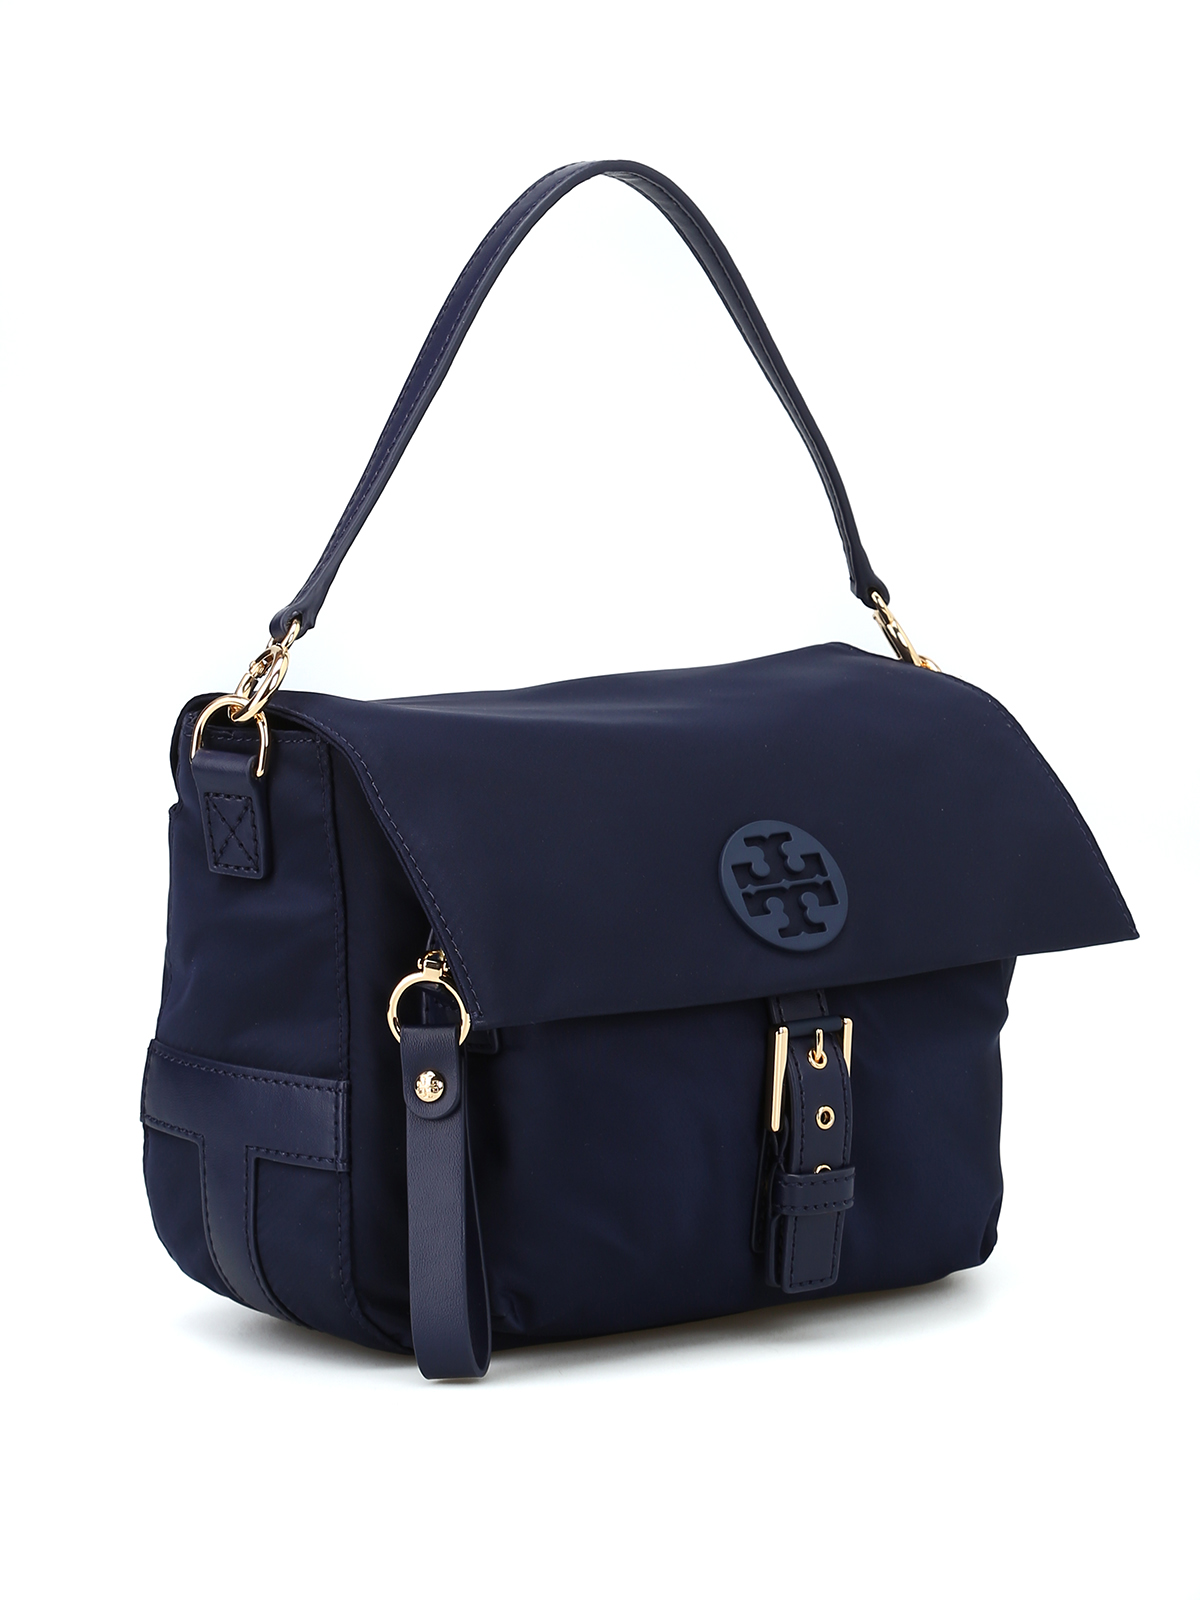 Tory Burch Cross Body Bags Online Tilda Blue Nylon Bag